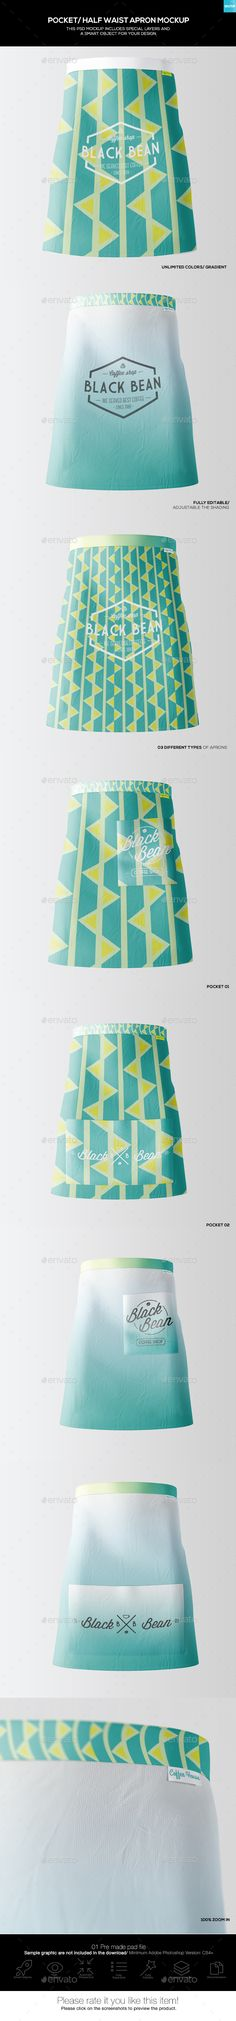 Half Waist Apron #Mockup (3 Types)-02 - #Miscellaneous Apparel Download here: https://graphicriver.net/item/half-waist-apron-mockup-3-types02/19455615?ref=alena994